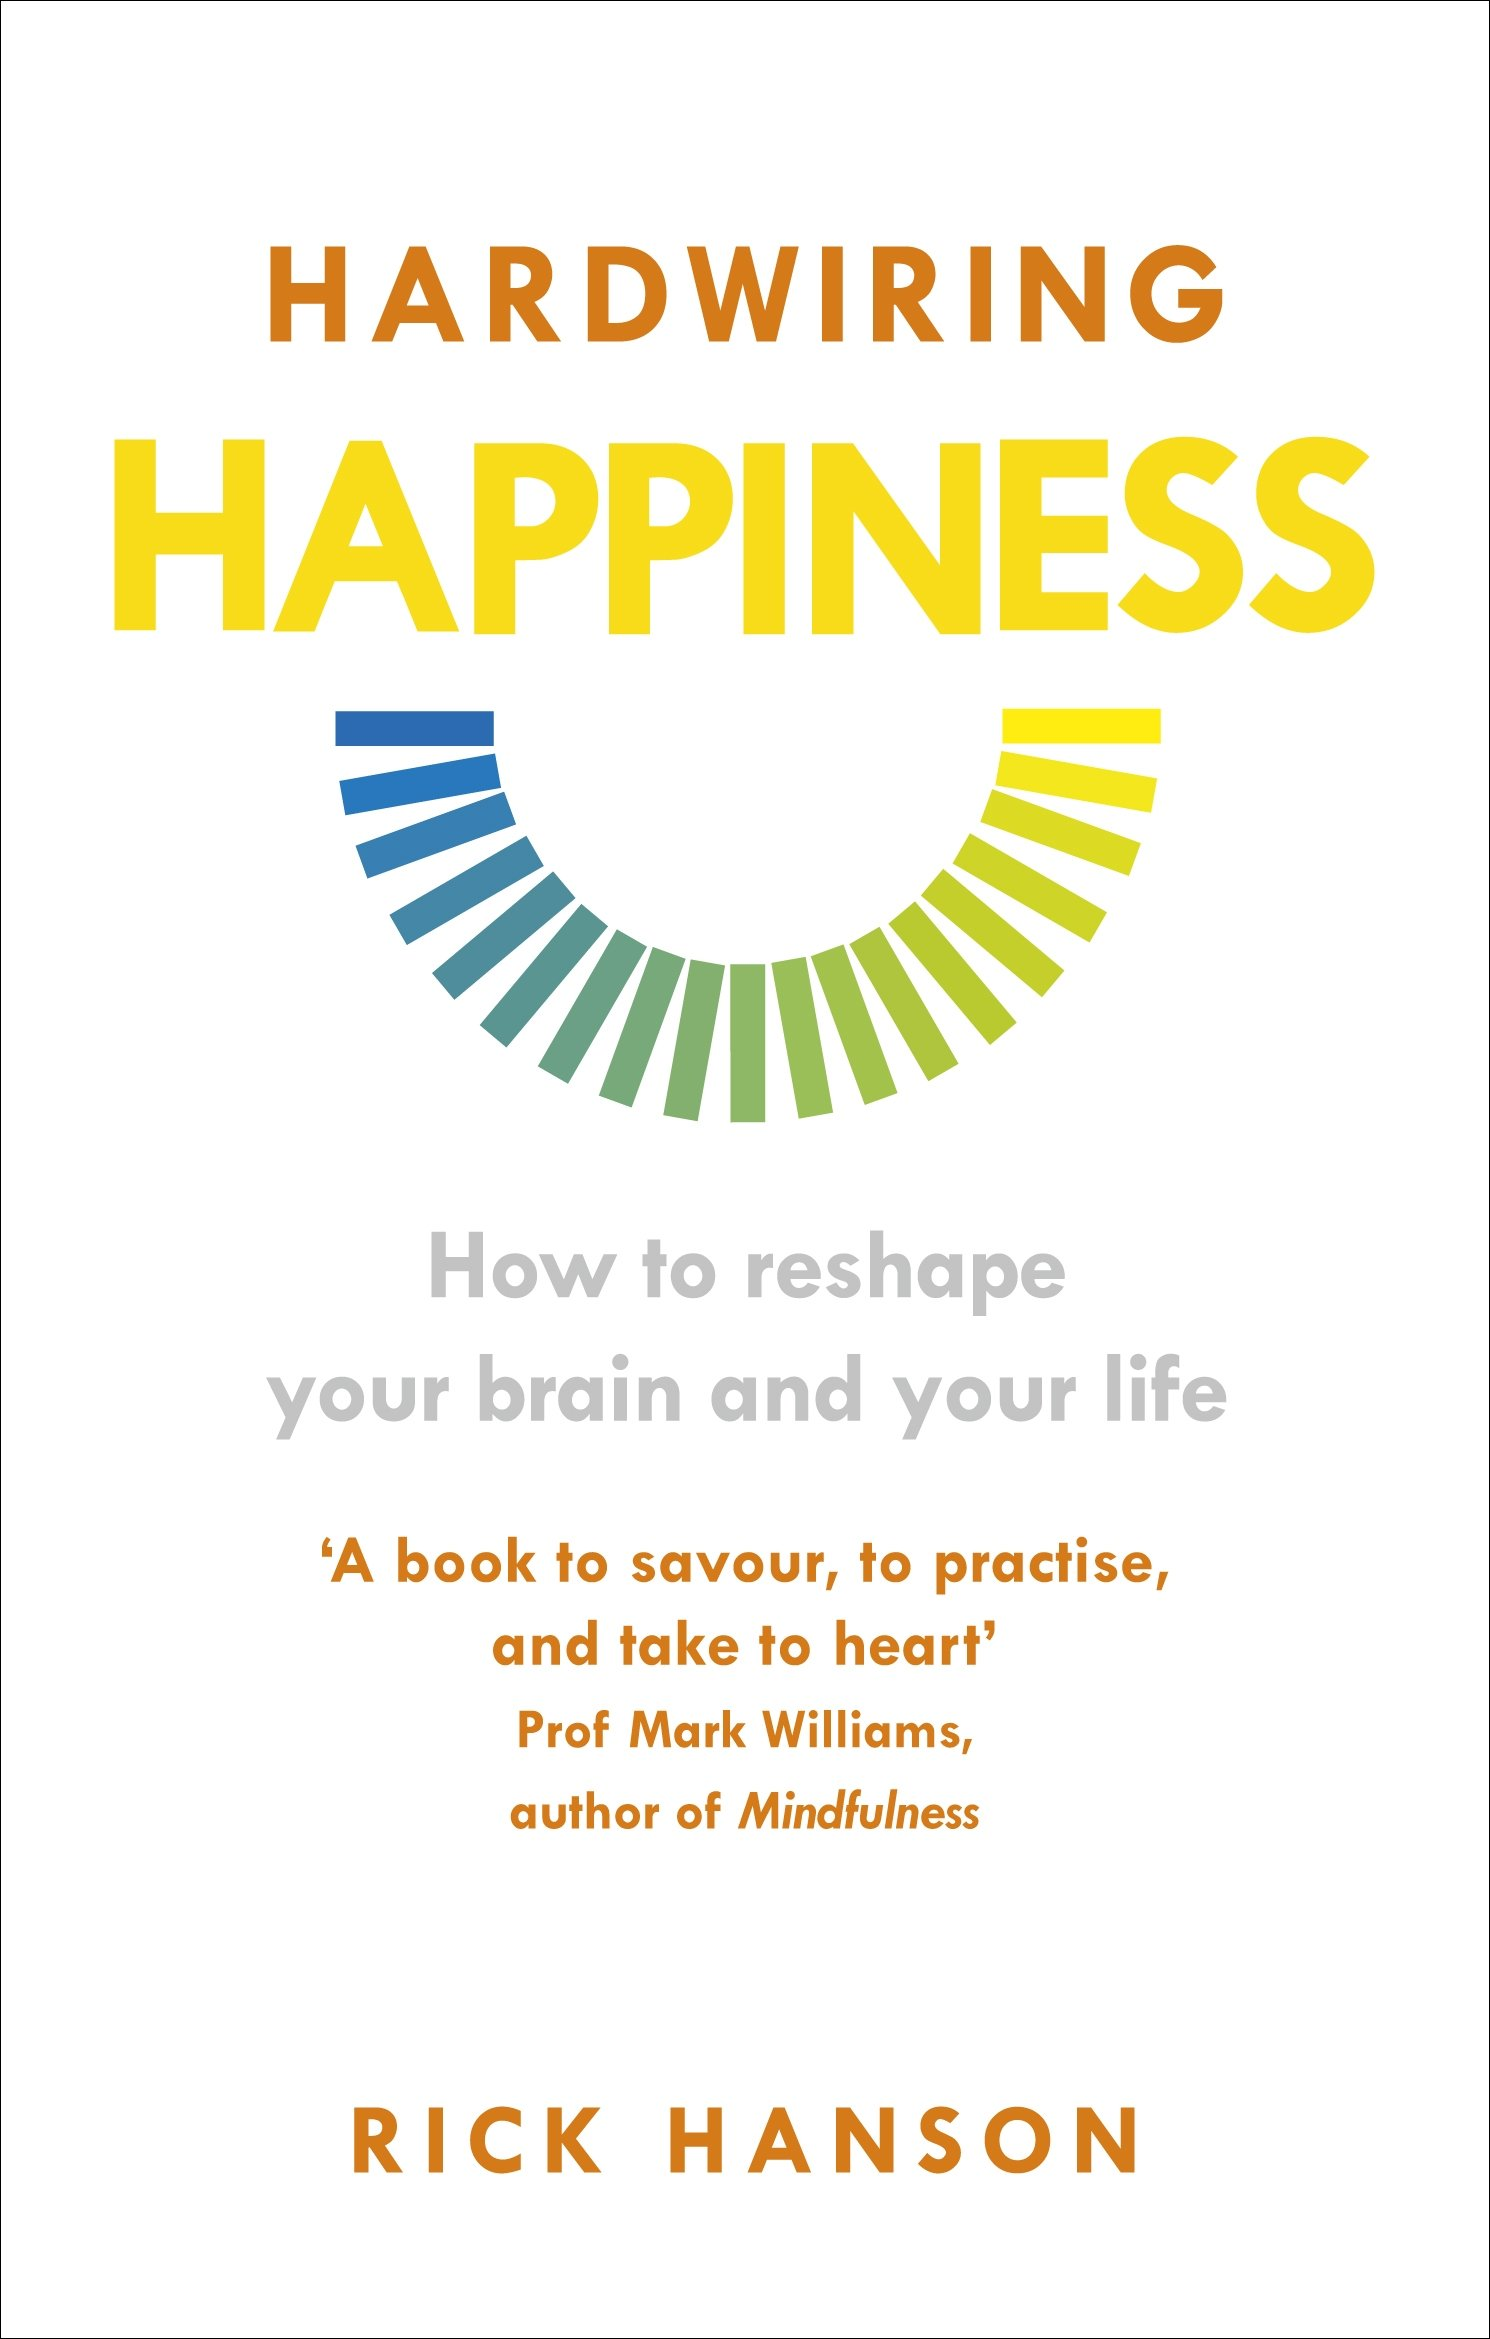 hardwiring happiness how to reshape your brain and your life rh amazon co uk hardwiring your brain to think like a nurse Hardwiring Excellence Cliff Notes